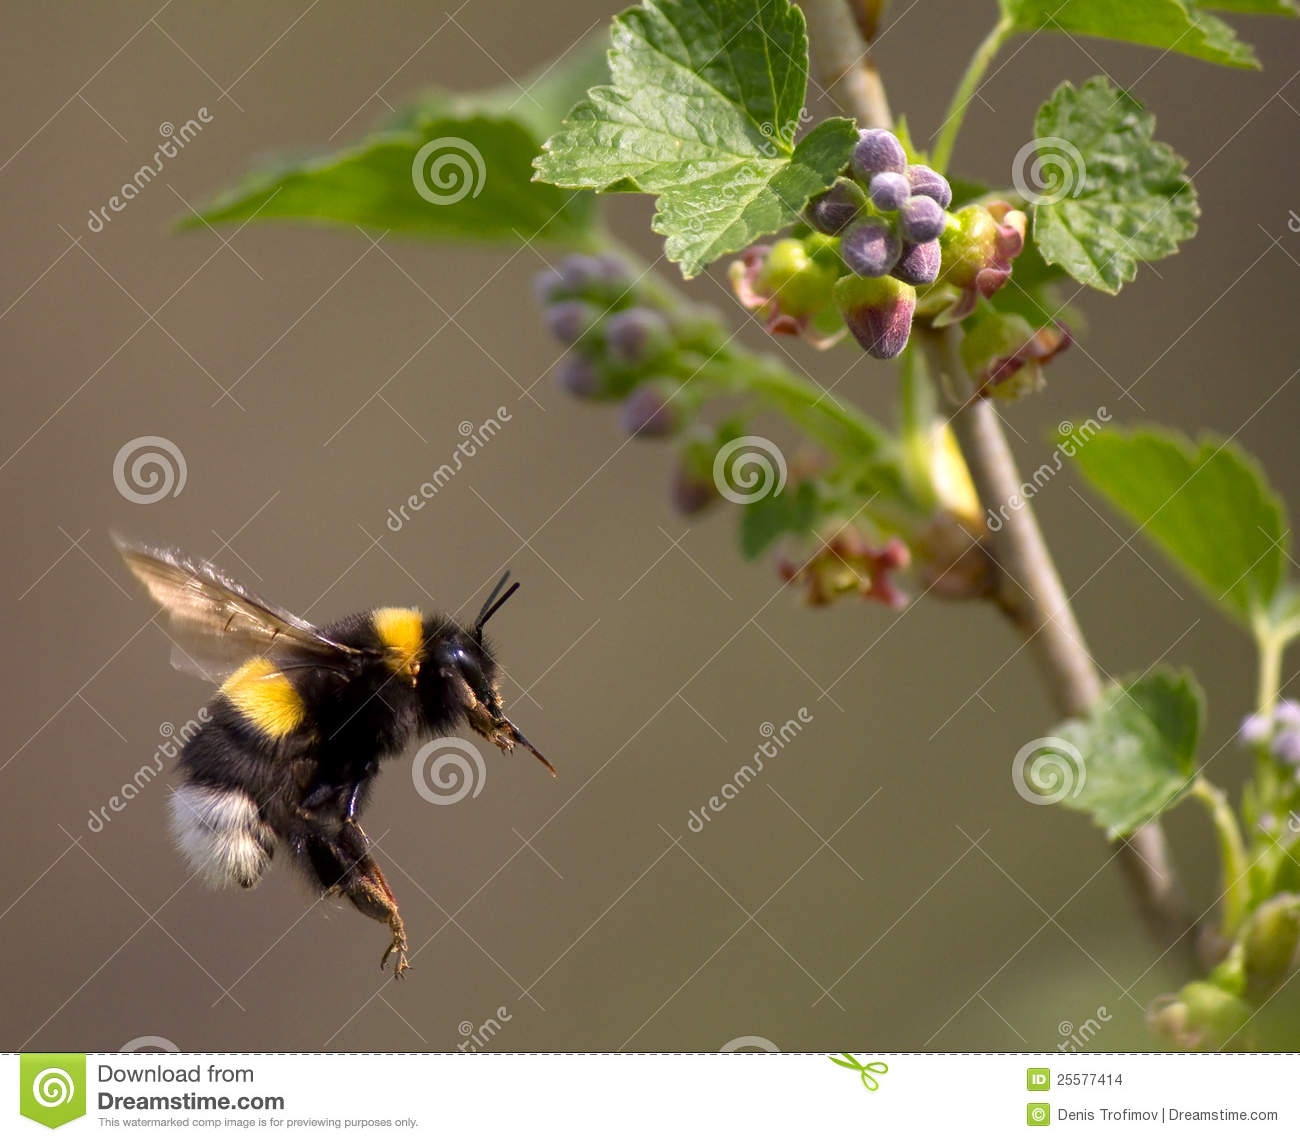 Bumble bee flying to flower